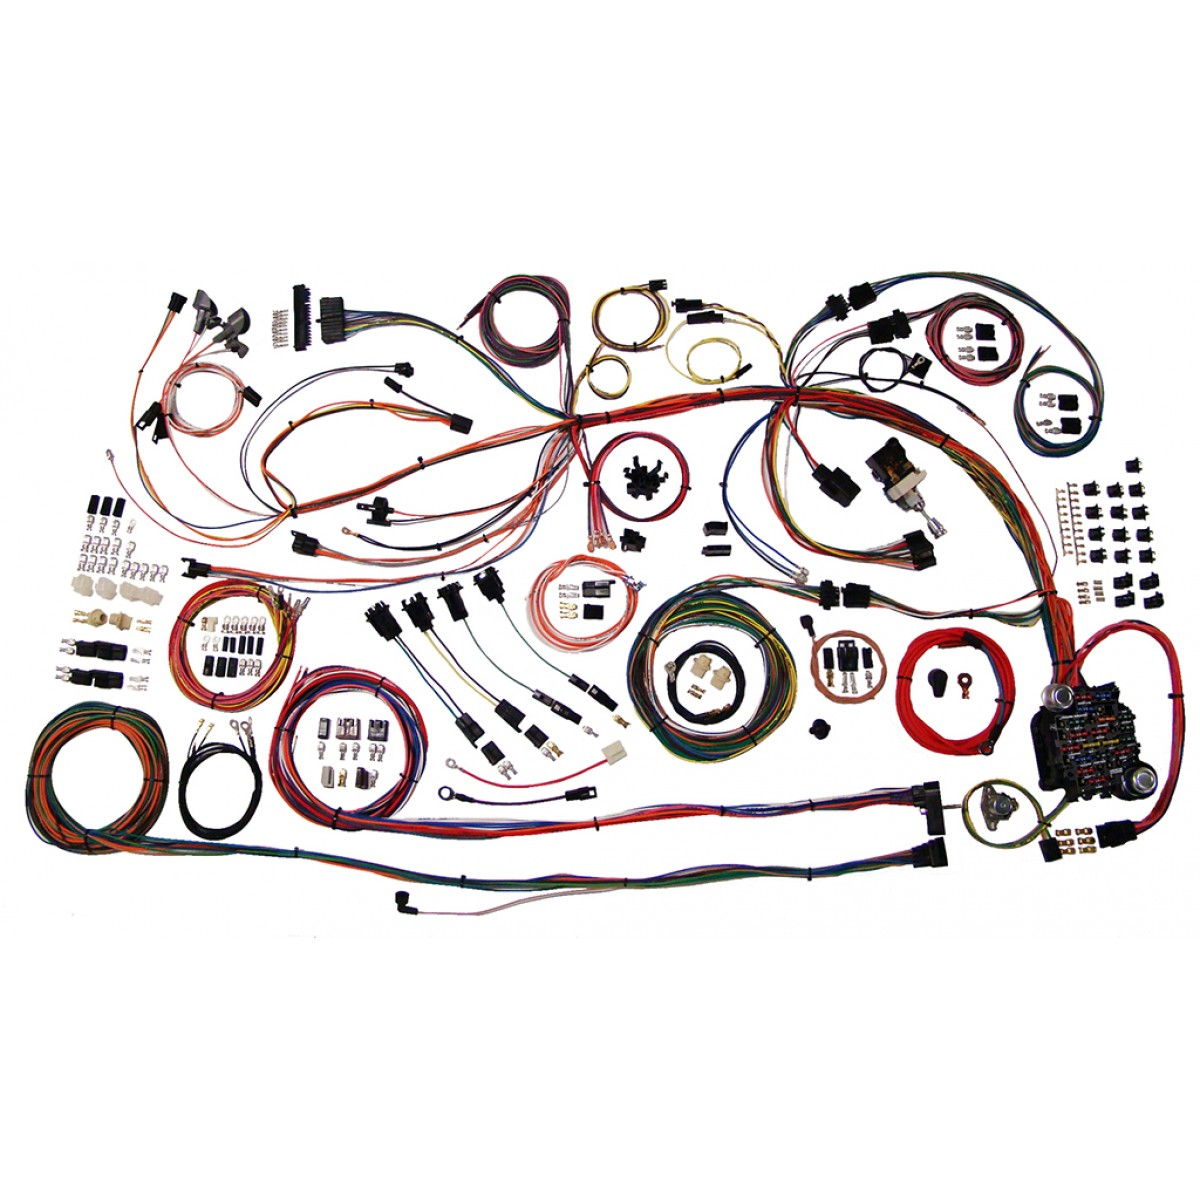 complete wiring harness kit 1968 1969 chevelle part 510158 68 69 chevelle full wire harness 510158_2 1968 1969 el camino wiring harness kit part 510158 1968 1969 1968 firebird engine wiring harness at metegol.co